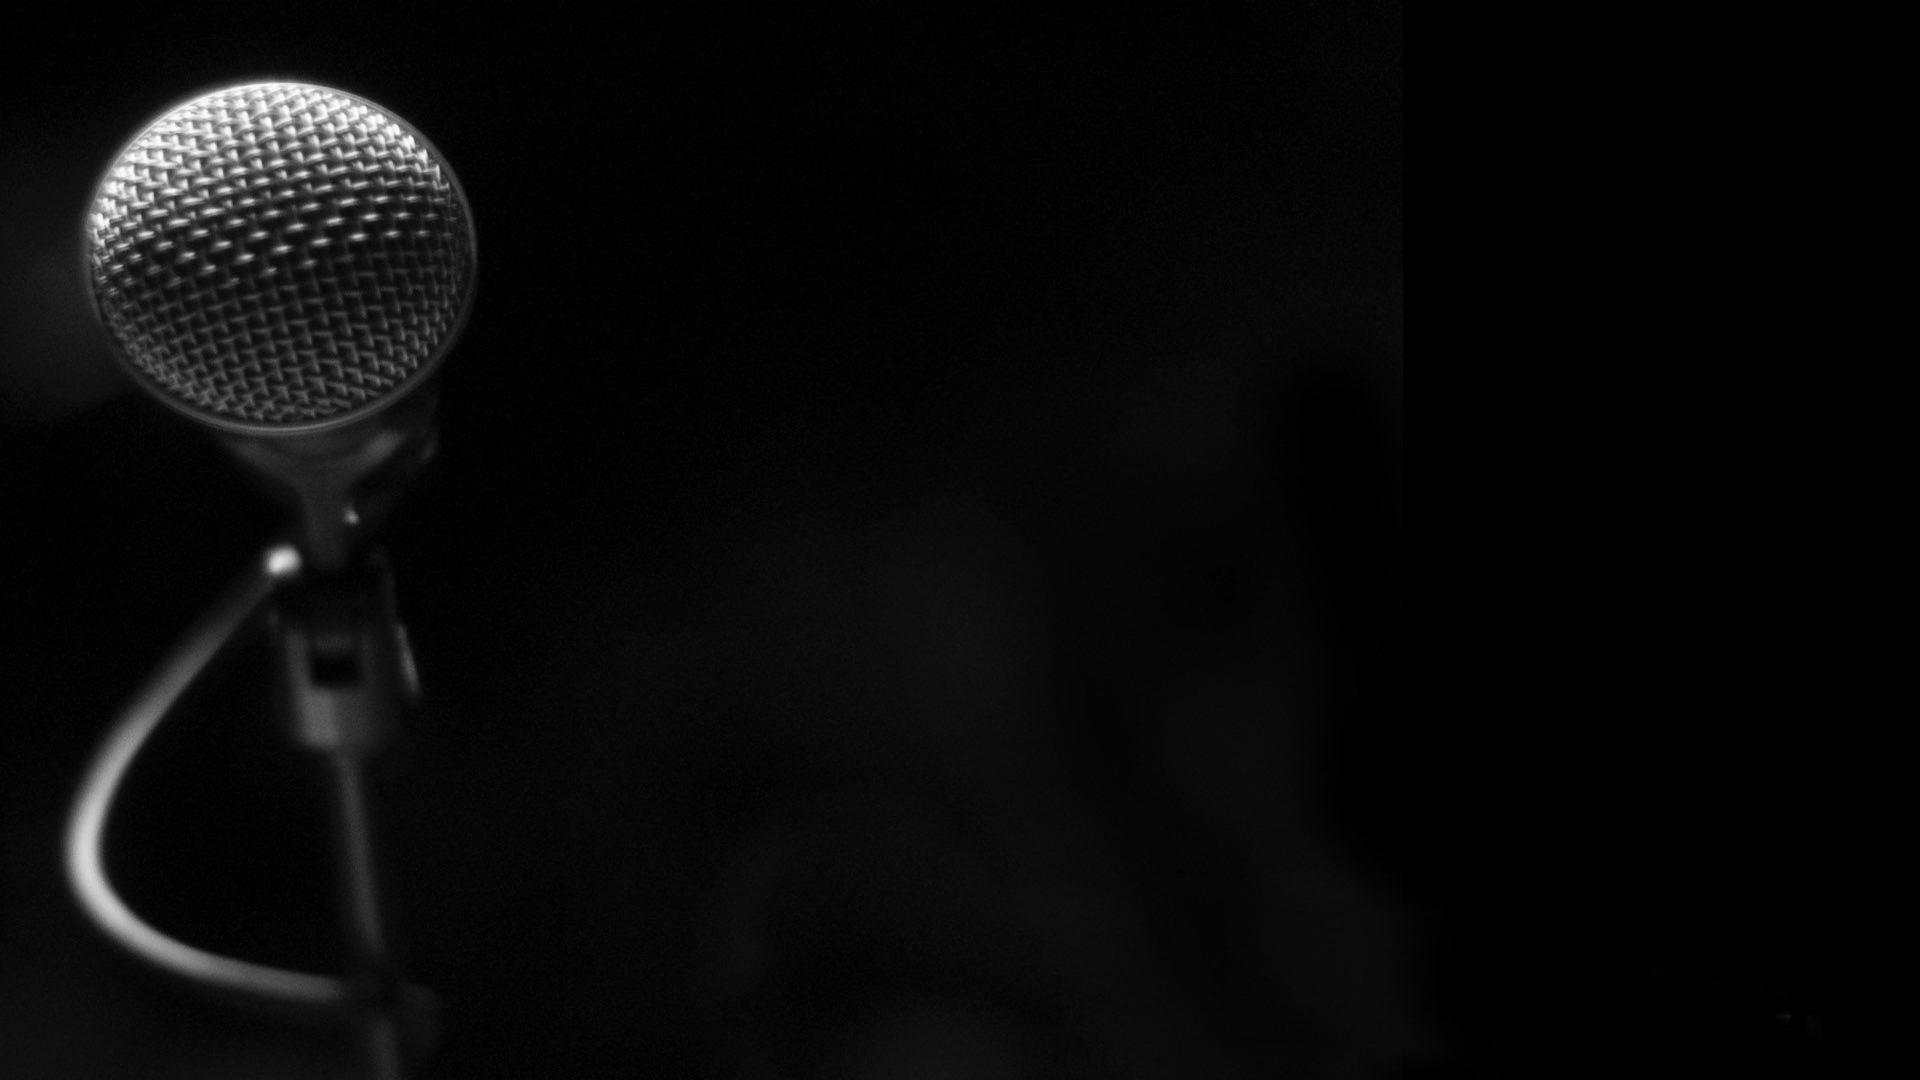 Microphone Background 34327 1920x1200 px